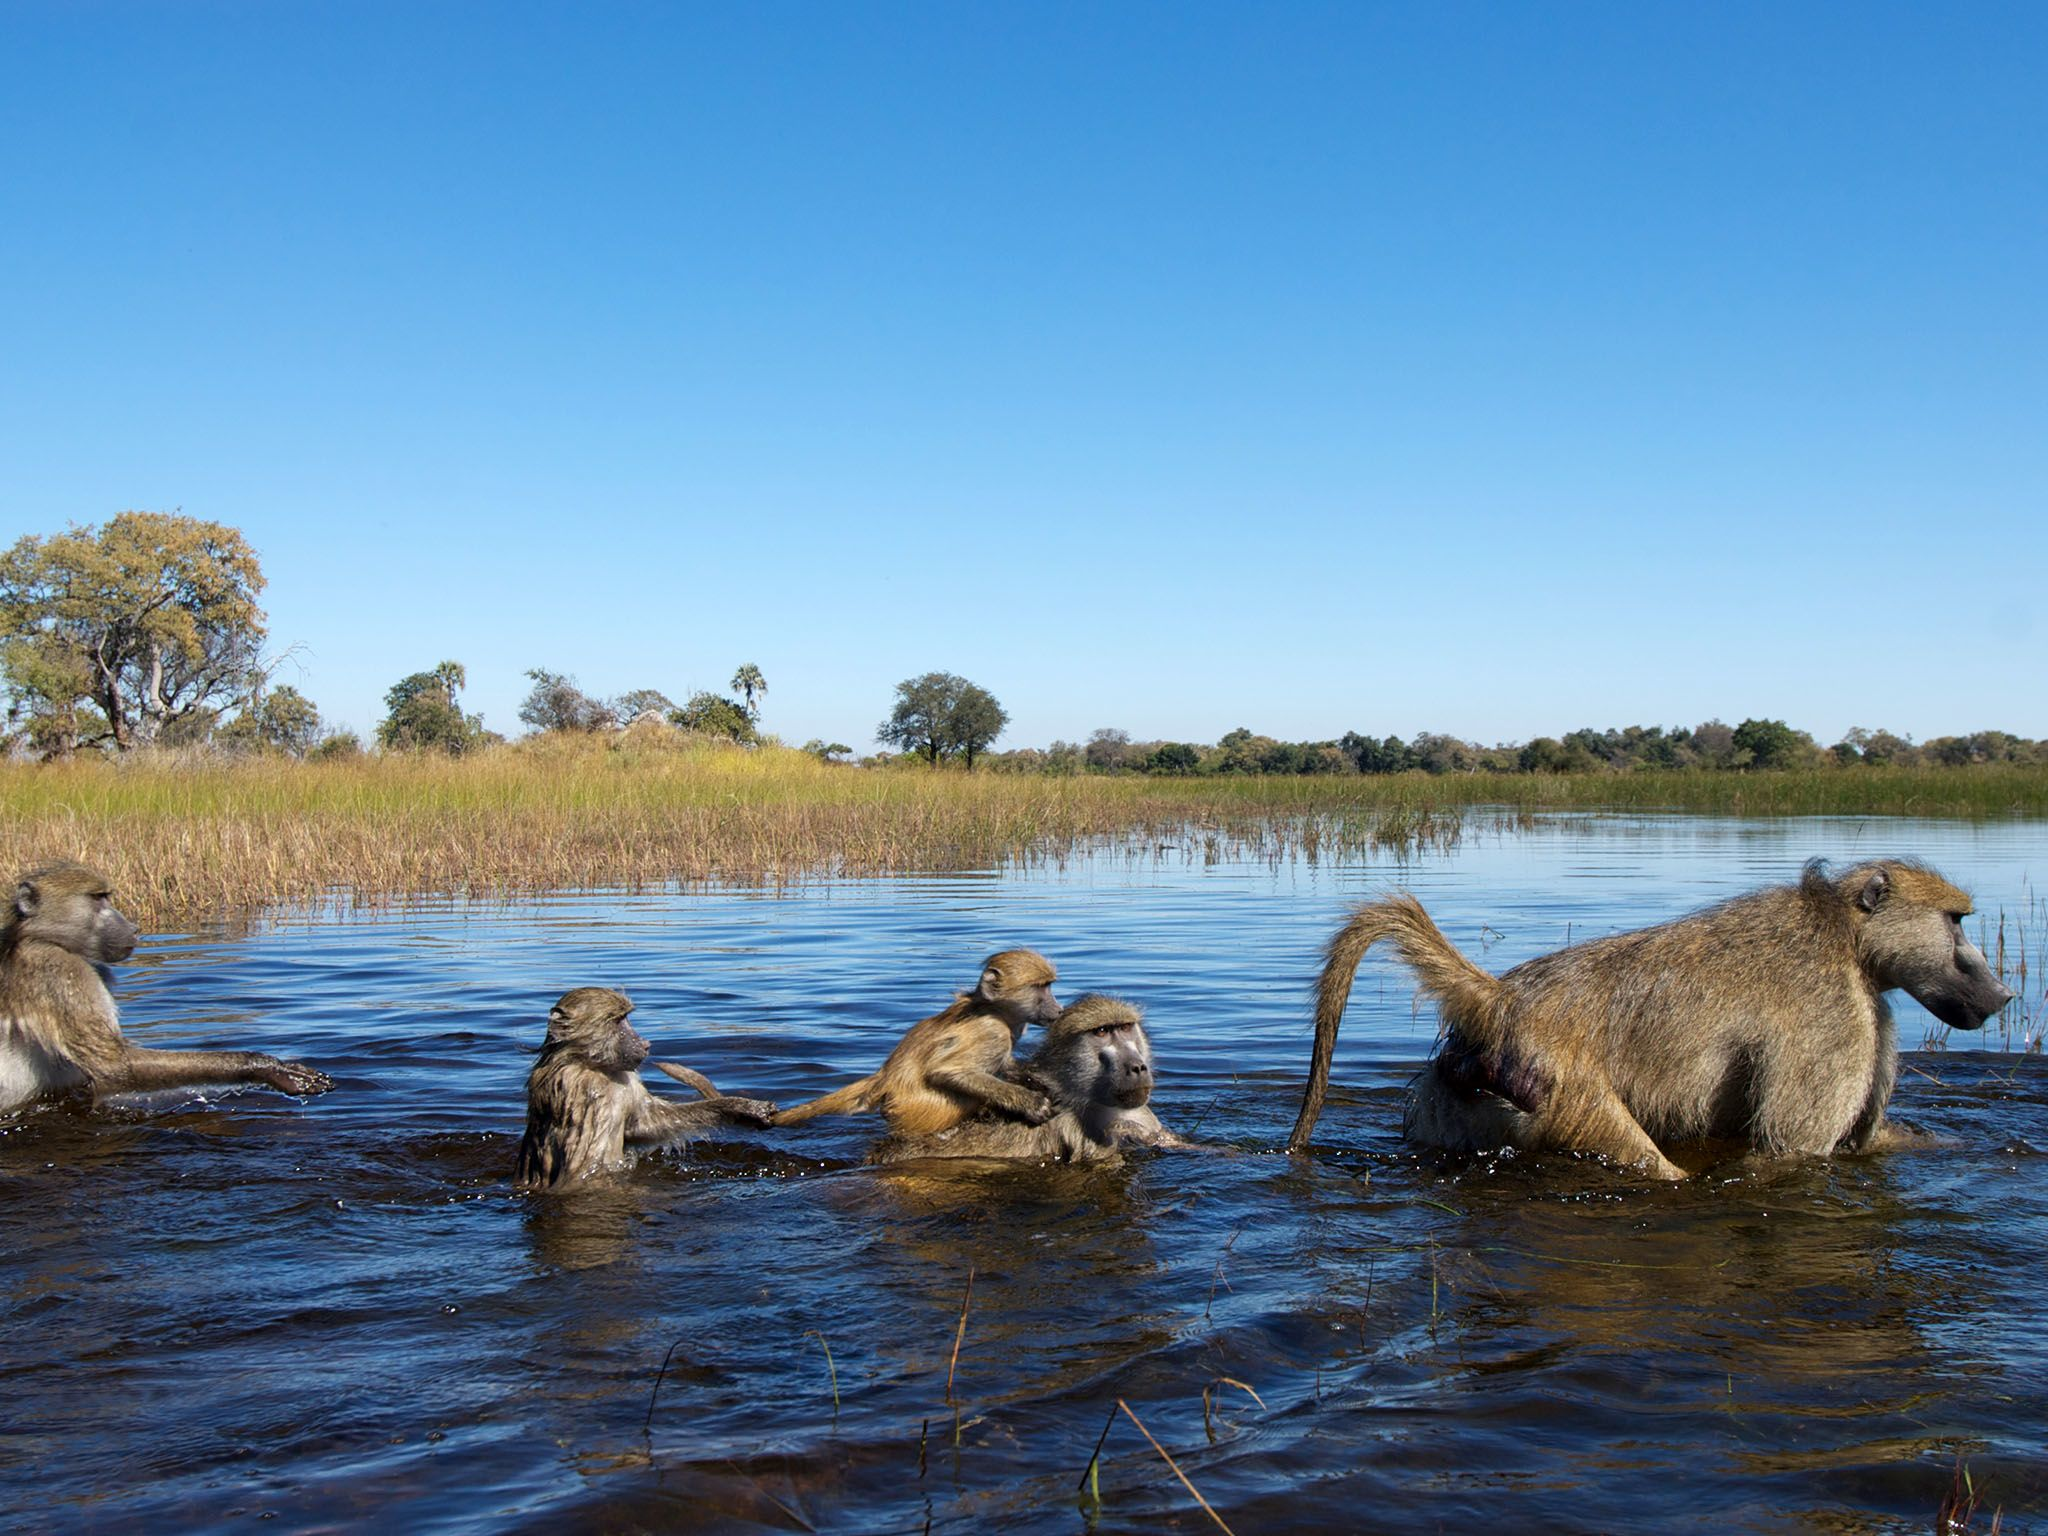 Moremi Game Reserve, Ngamiland, Botswana: A troop of chacma baboons crosses a flooded plain in... [Photo of the day - می 2016]